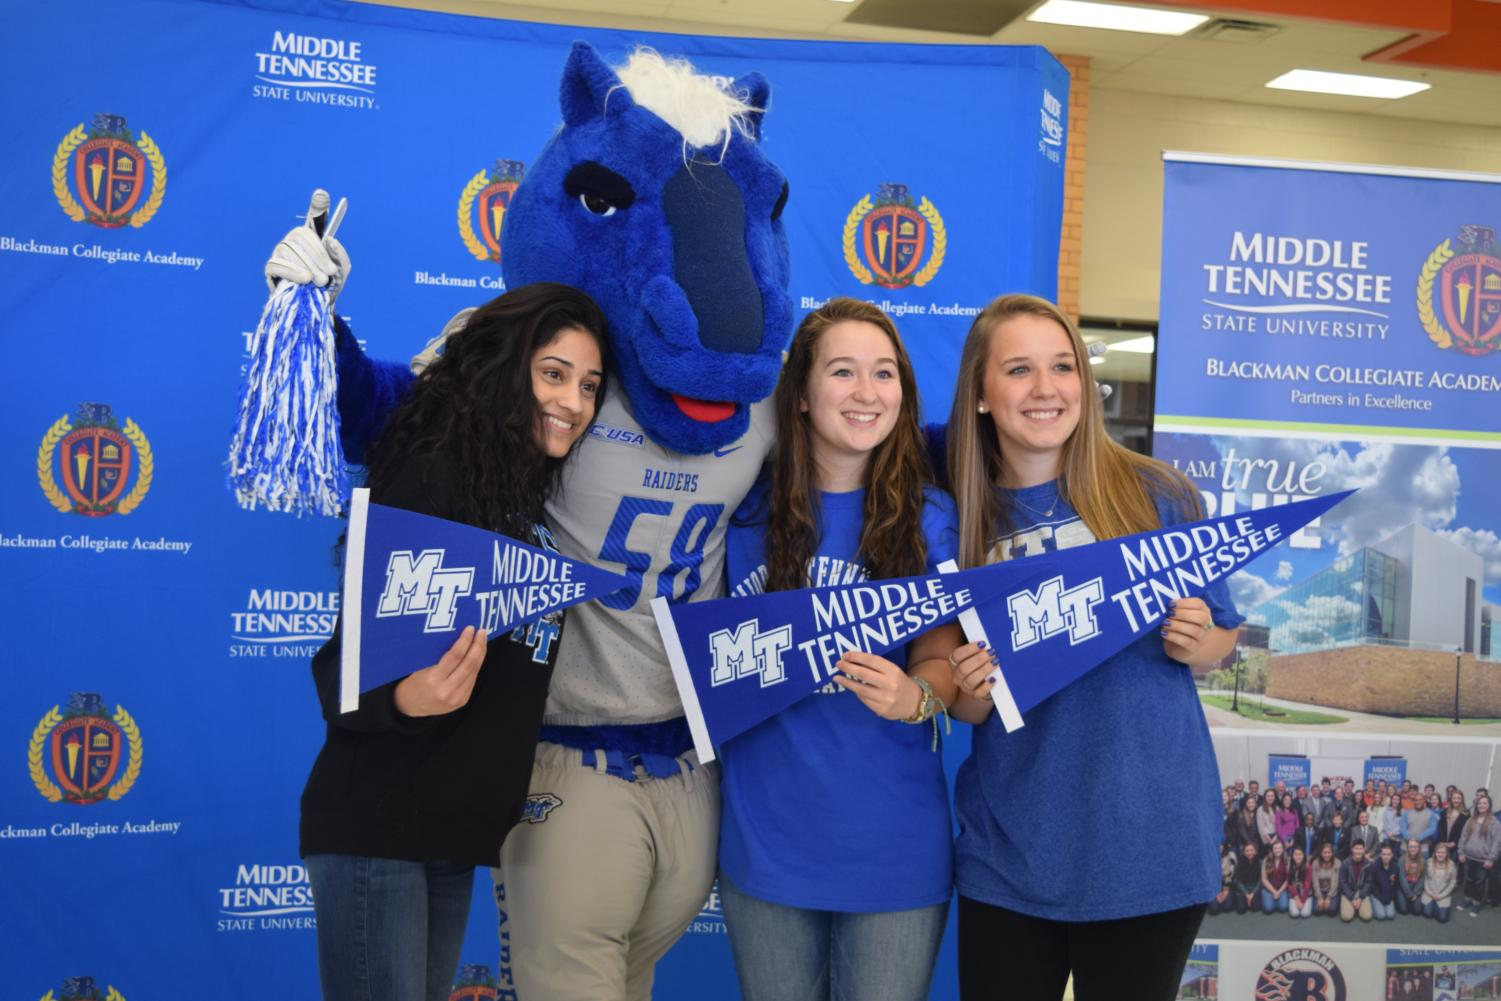 Rija+Asim+%28left%29%2C+Allison+Collins+%28middle%29%2C+and+Carly+Bowen+%28right%29+pose+with+MTSU+mascot%2C+Lightning.